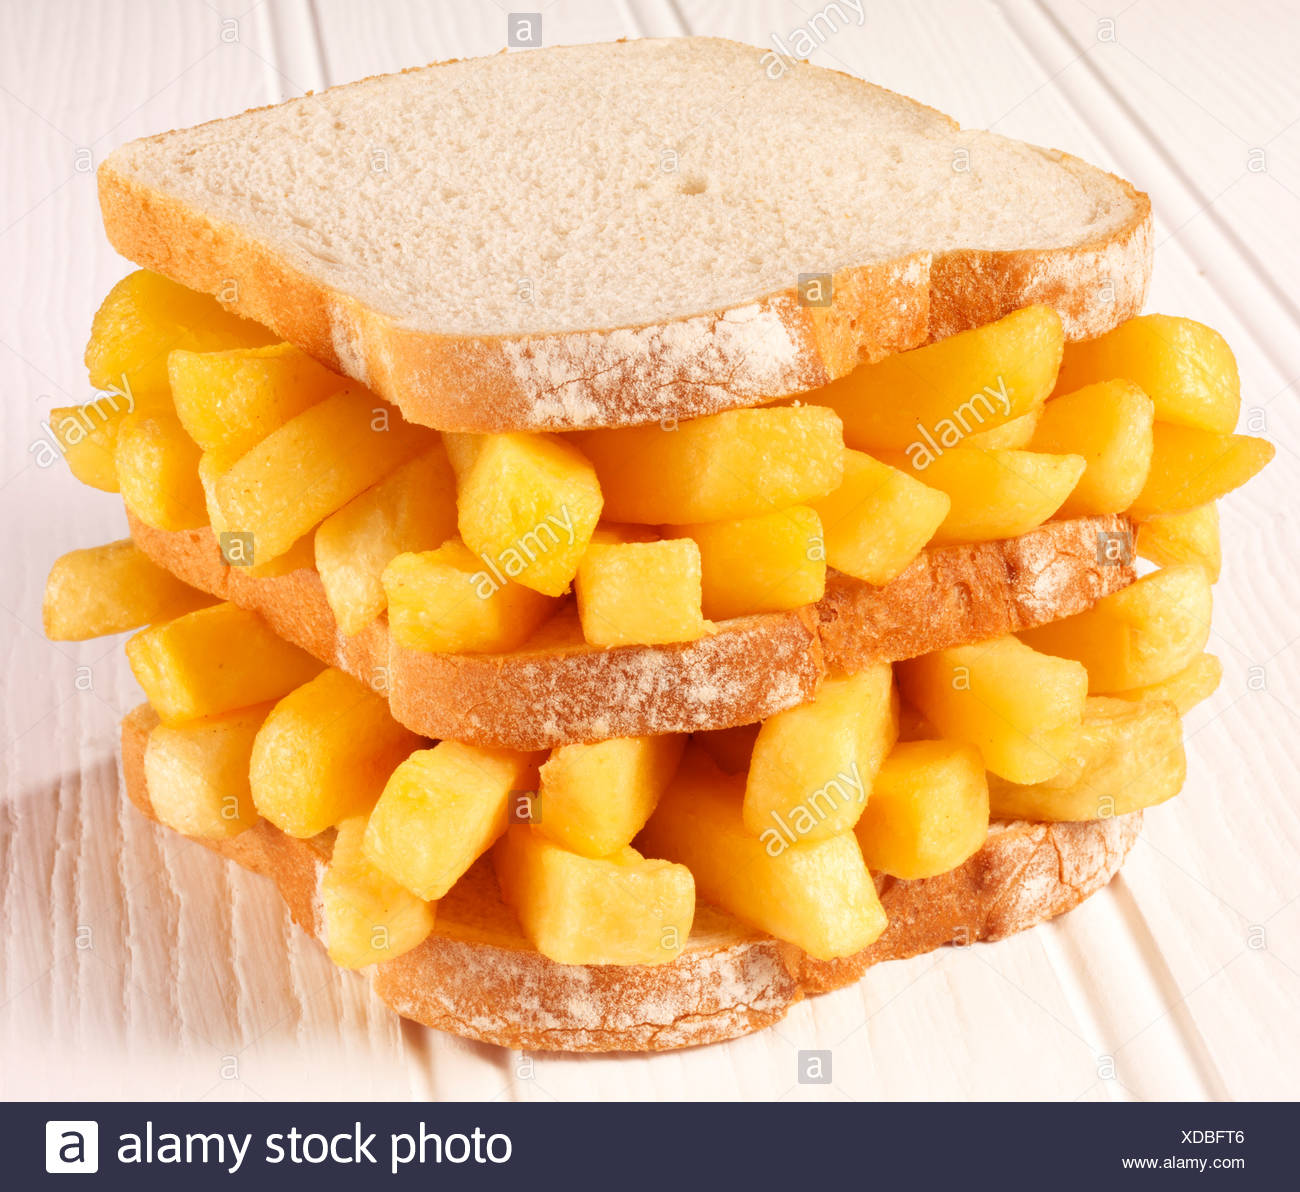 CHIP BUTTY SANDWICH - Stock Image